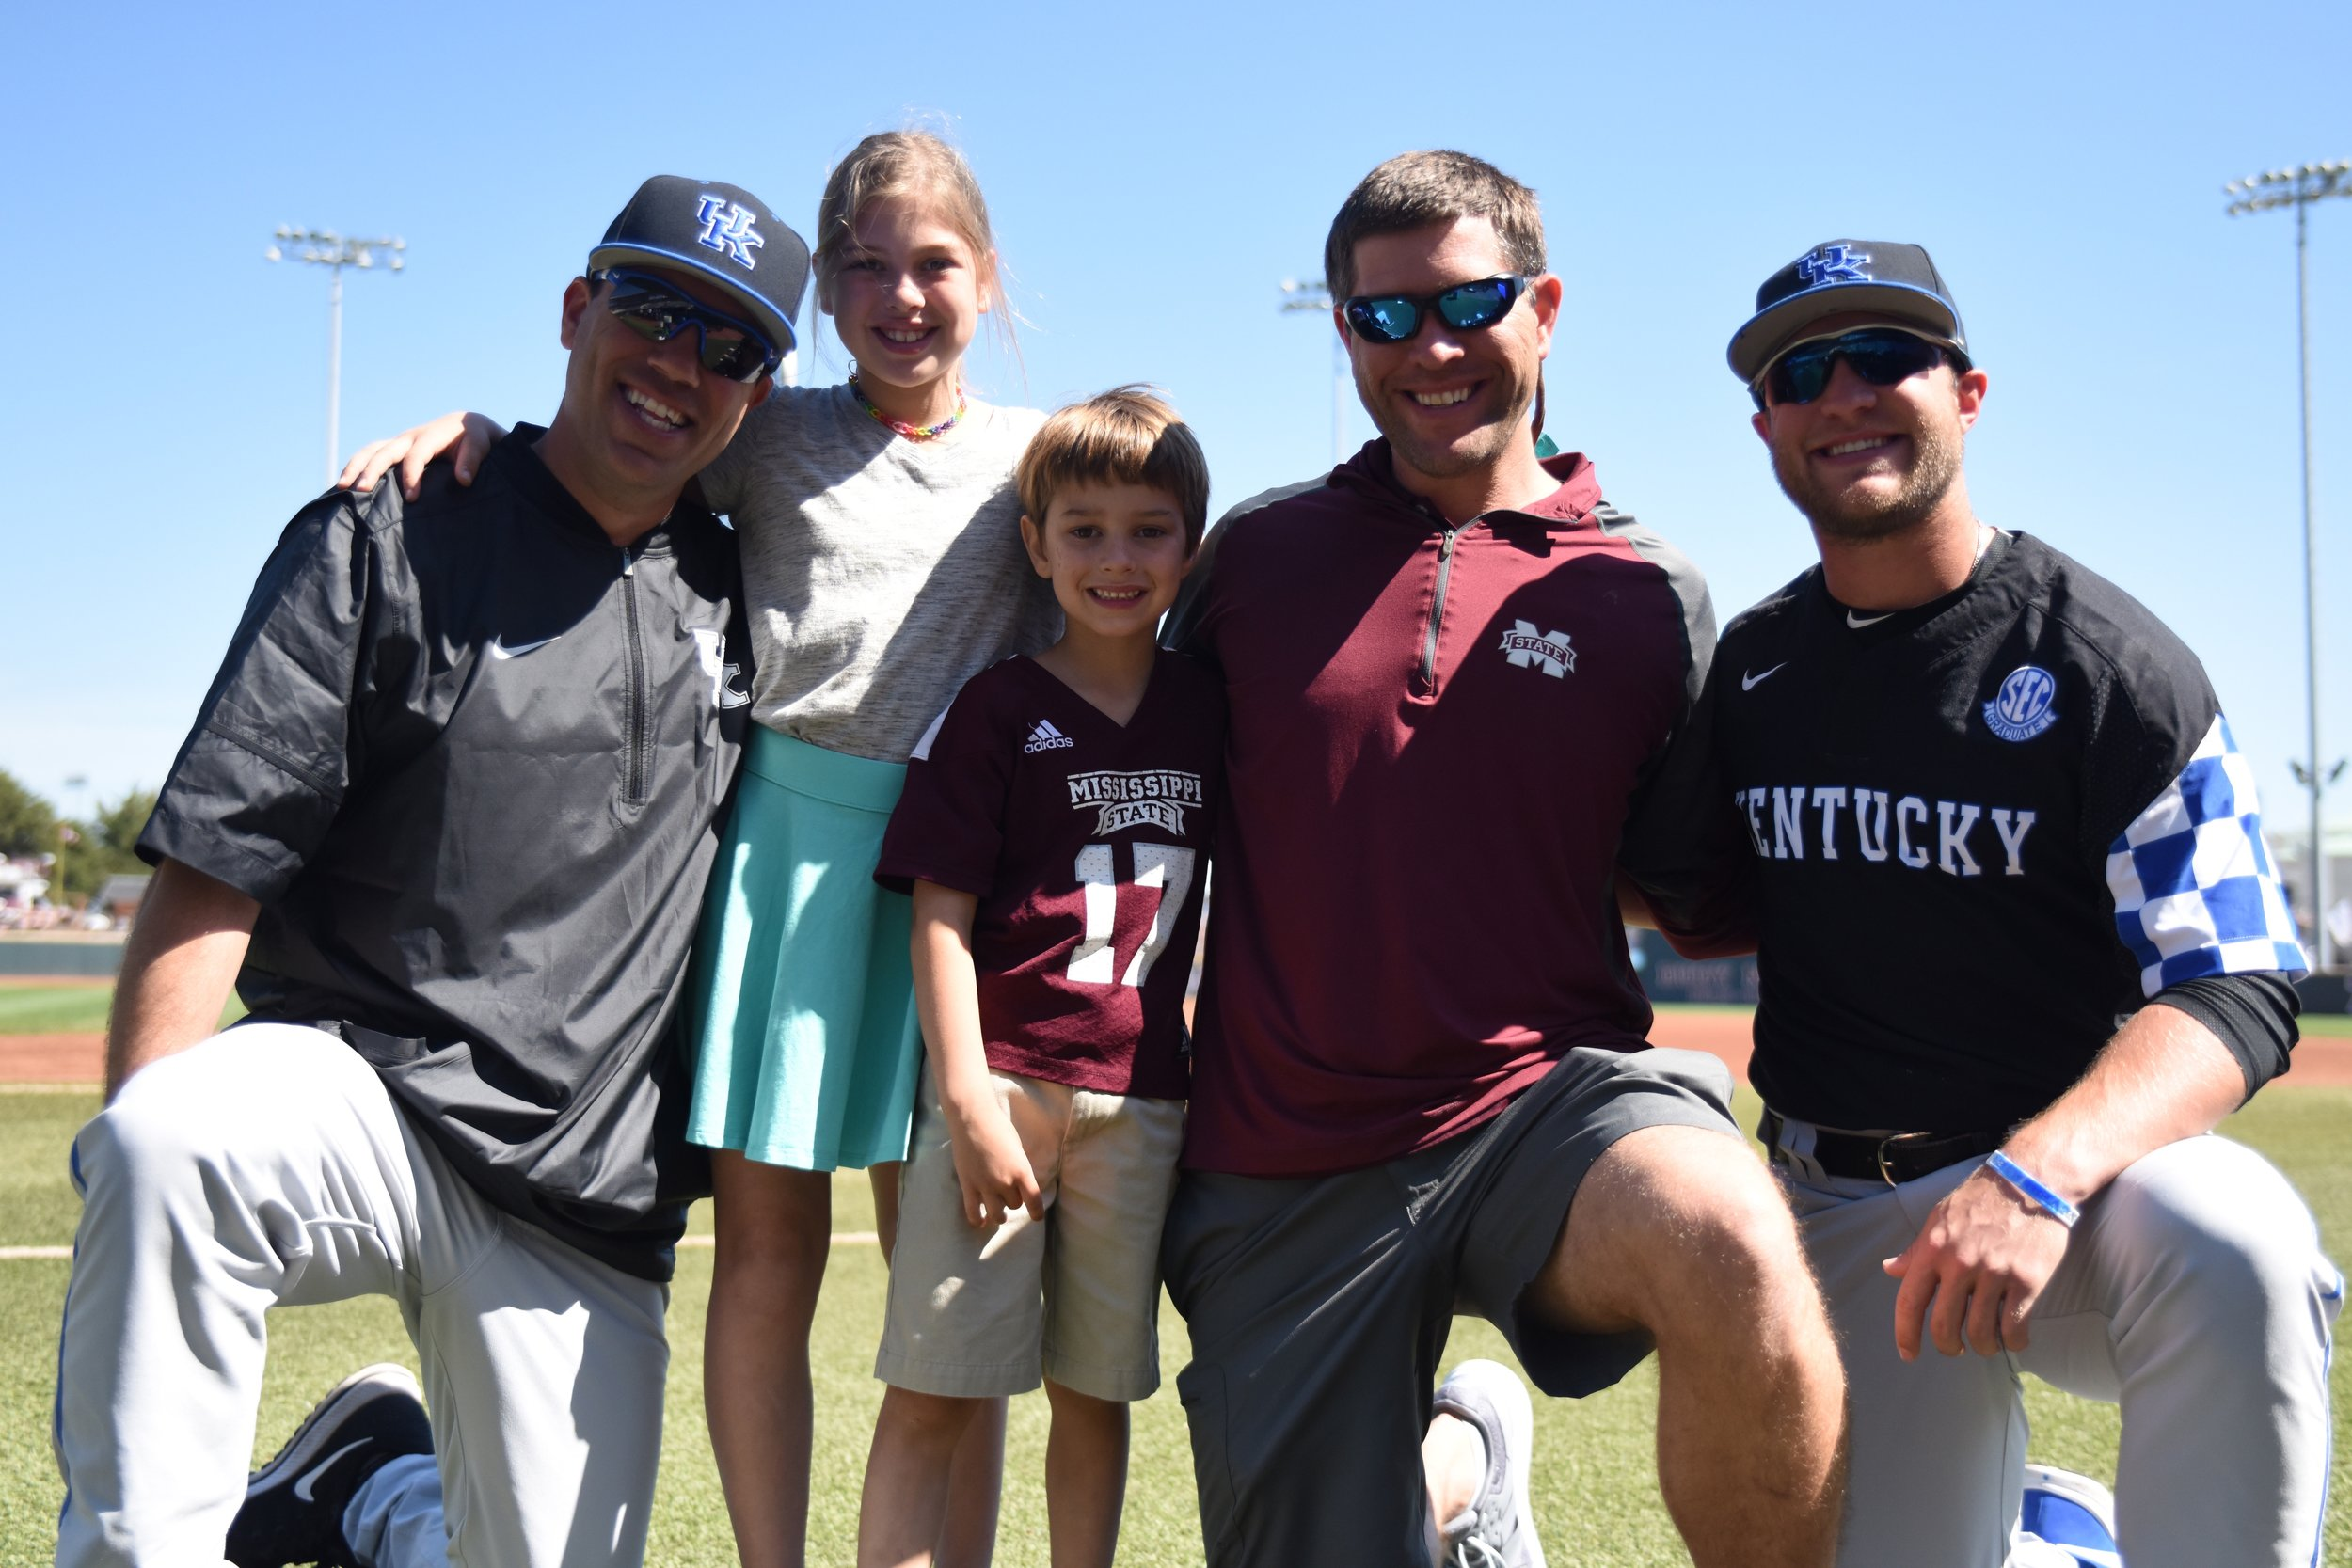 With coach Mingione and Storm in Starkville